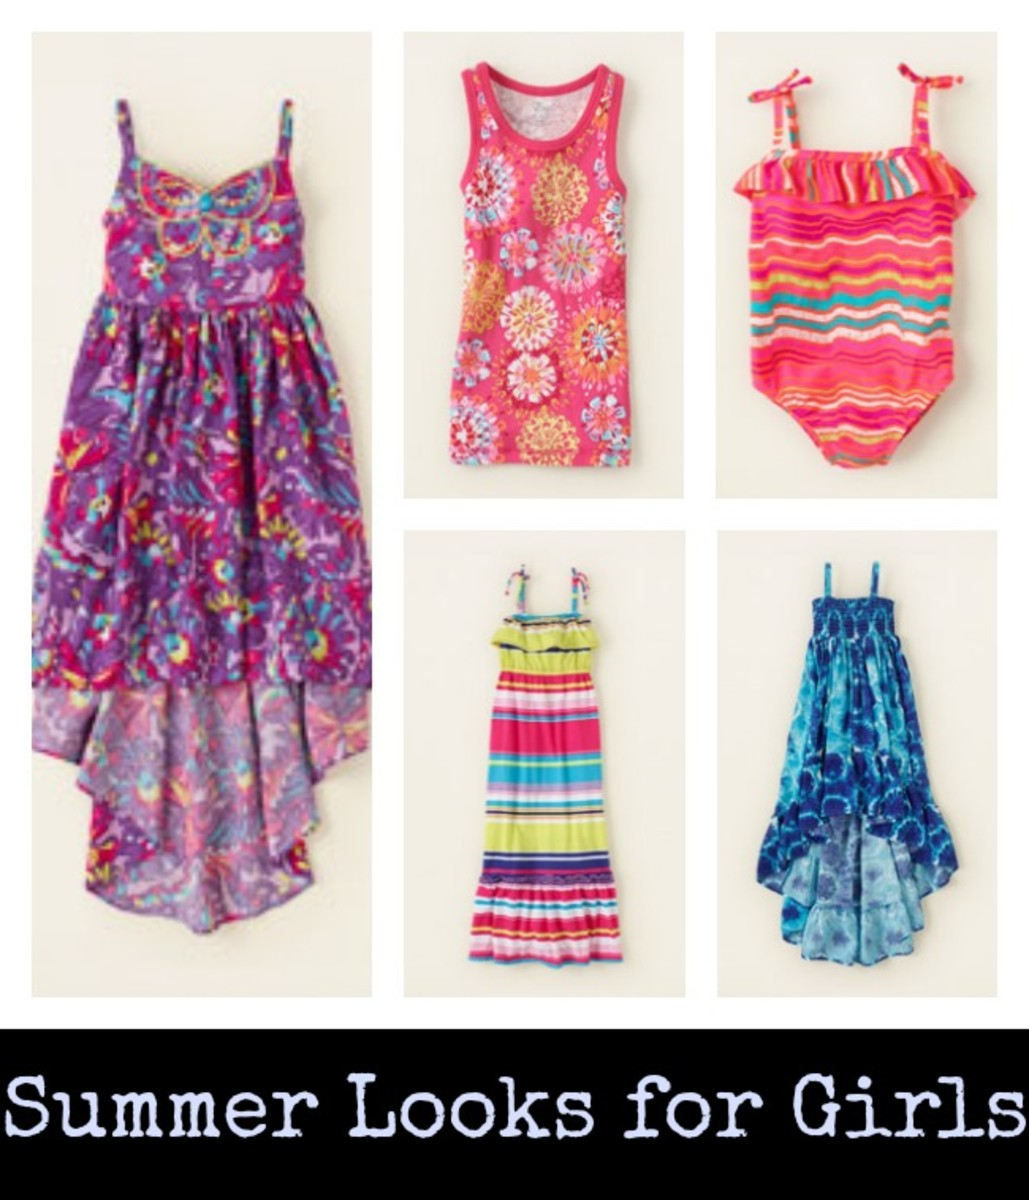 Children's Place Fashions